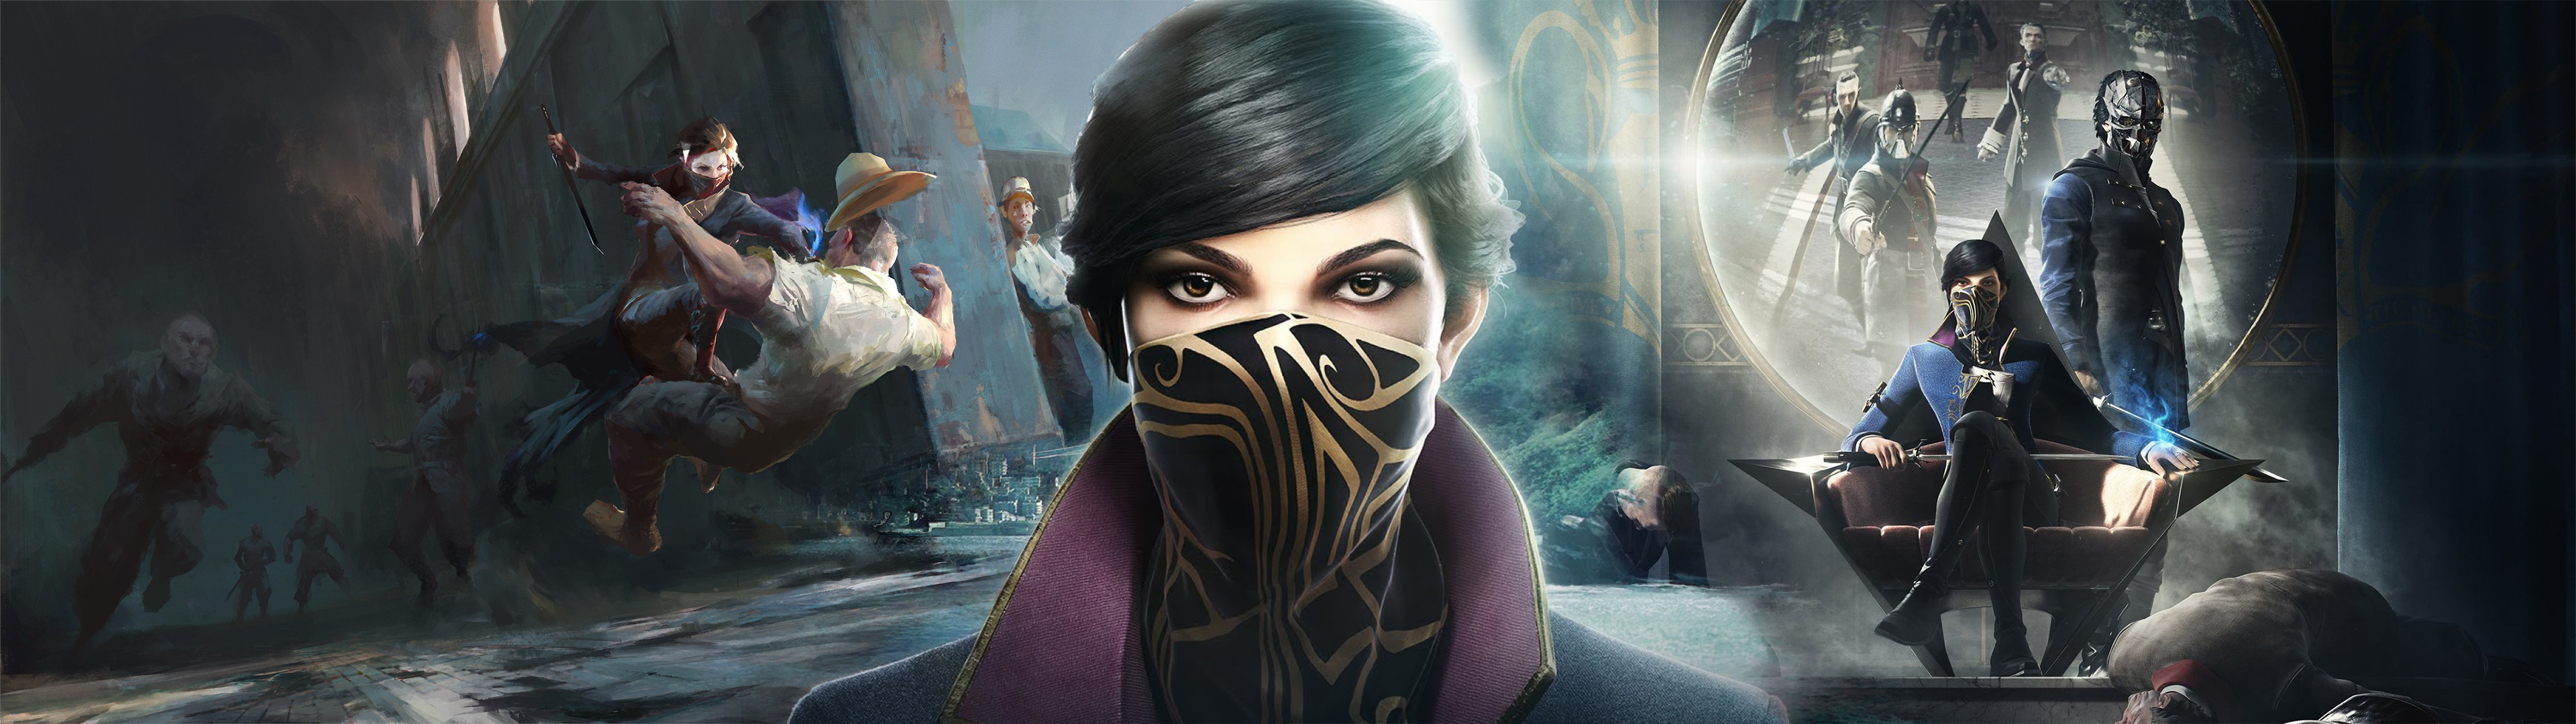 Dishonored 2 Dual Screen Wallpaper By Lariatura On Deviantart